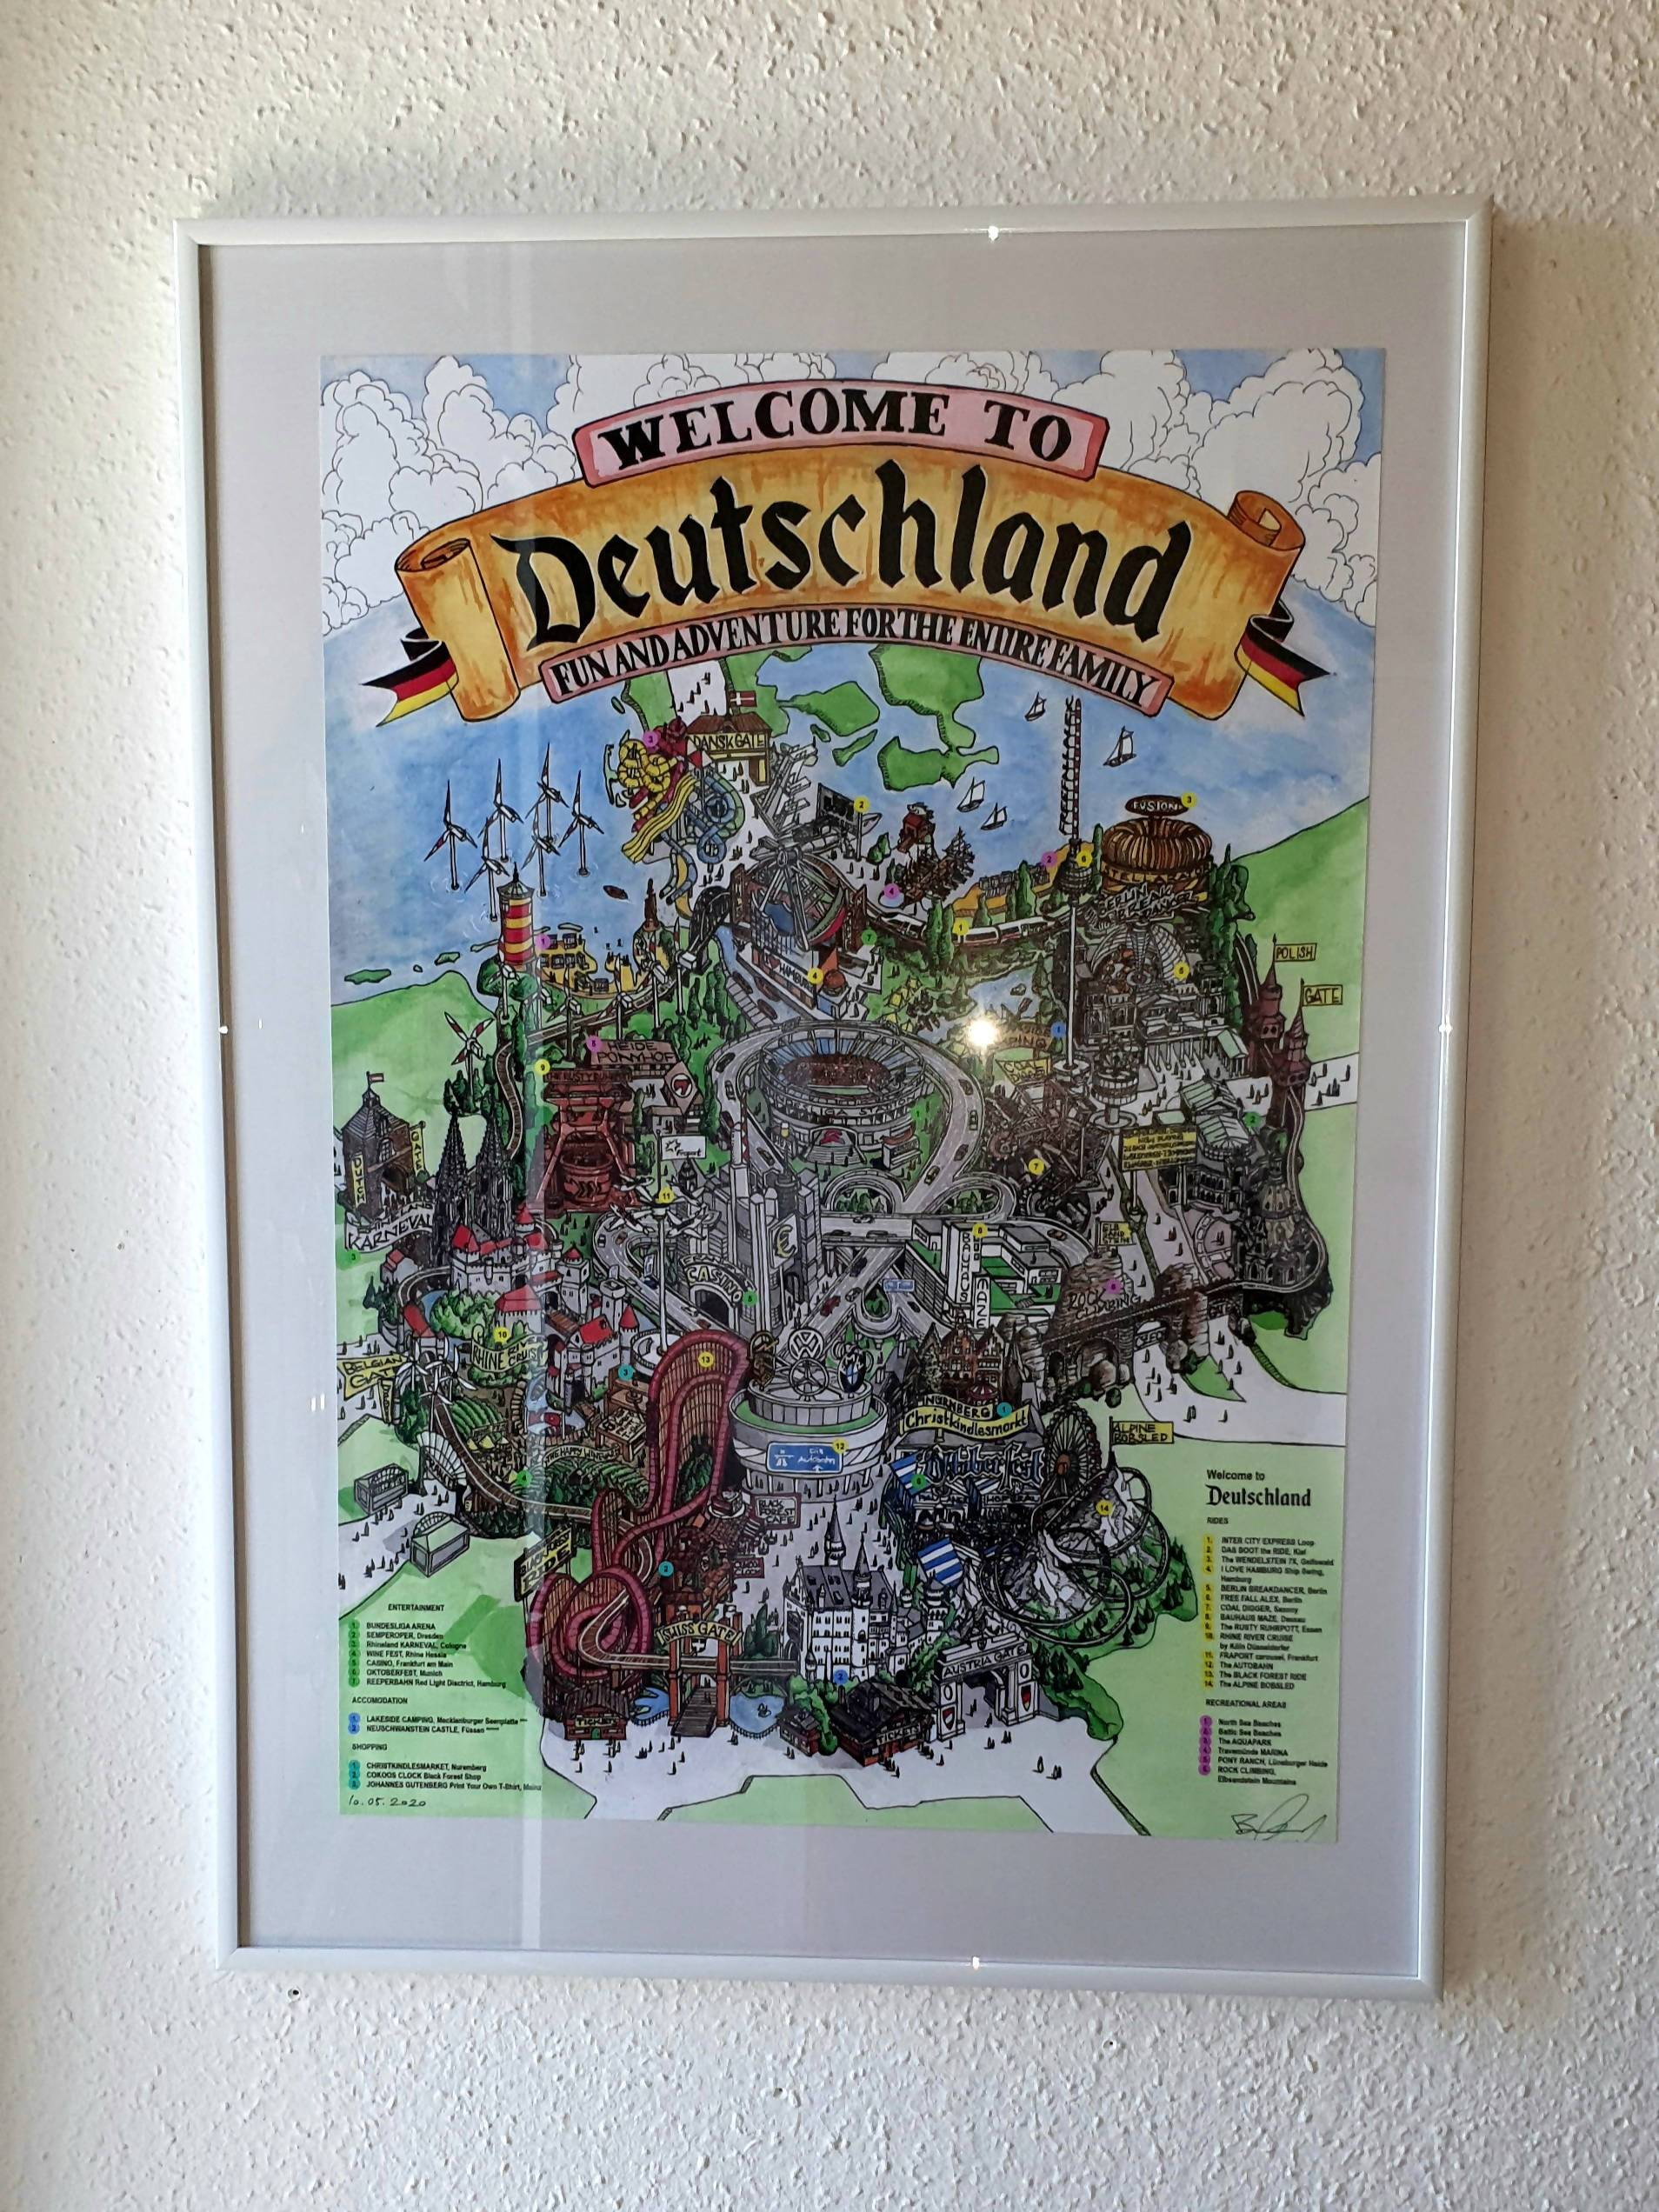 Welcome to Deutschland -Concept Master Plan of the Ultimate Theme Park about Germany, Poster - Posters - FunAndAdventureArt - Naiise